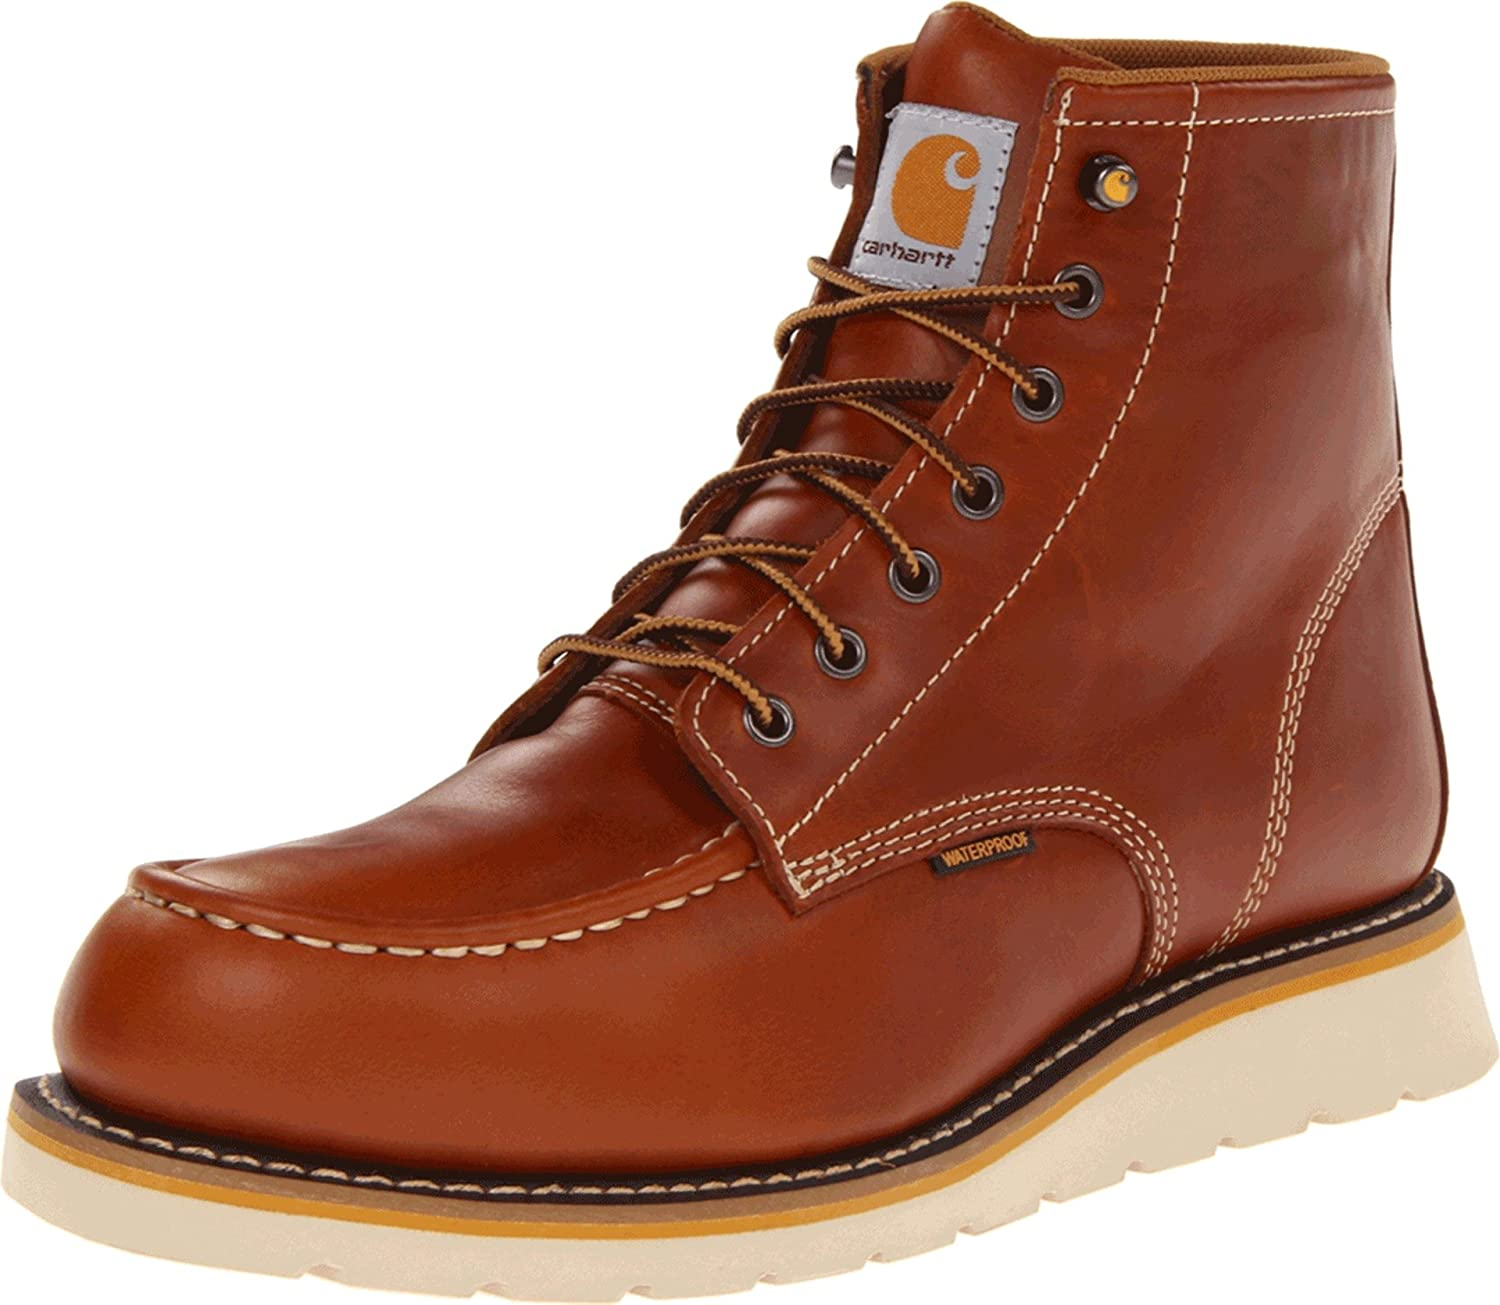 Amazon.com: Carhartt Men's CMW6170 Work Boot,Tan Full Grain,9 W US ...